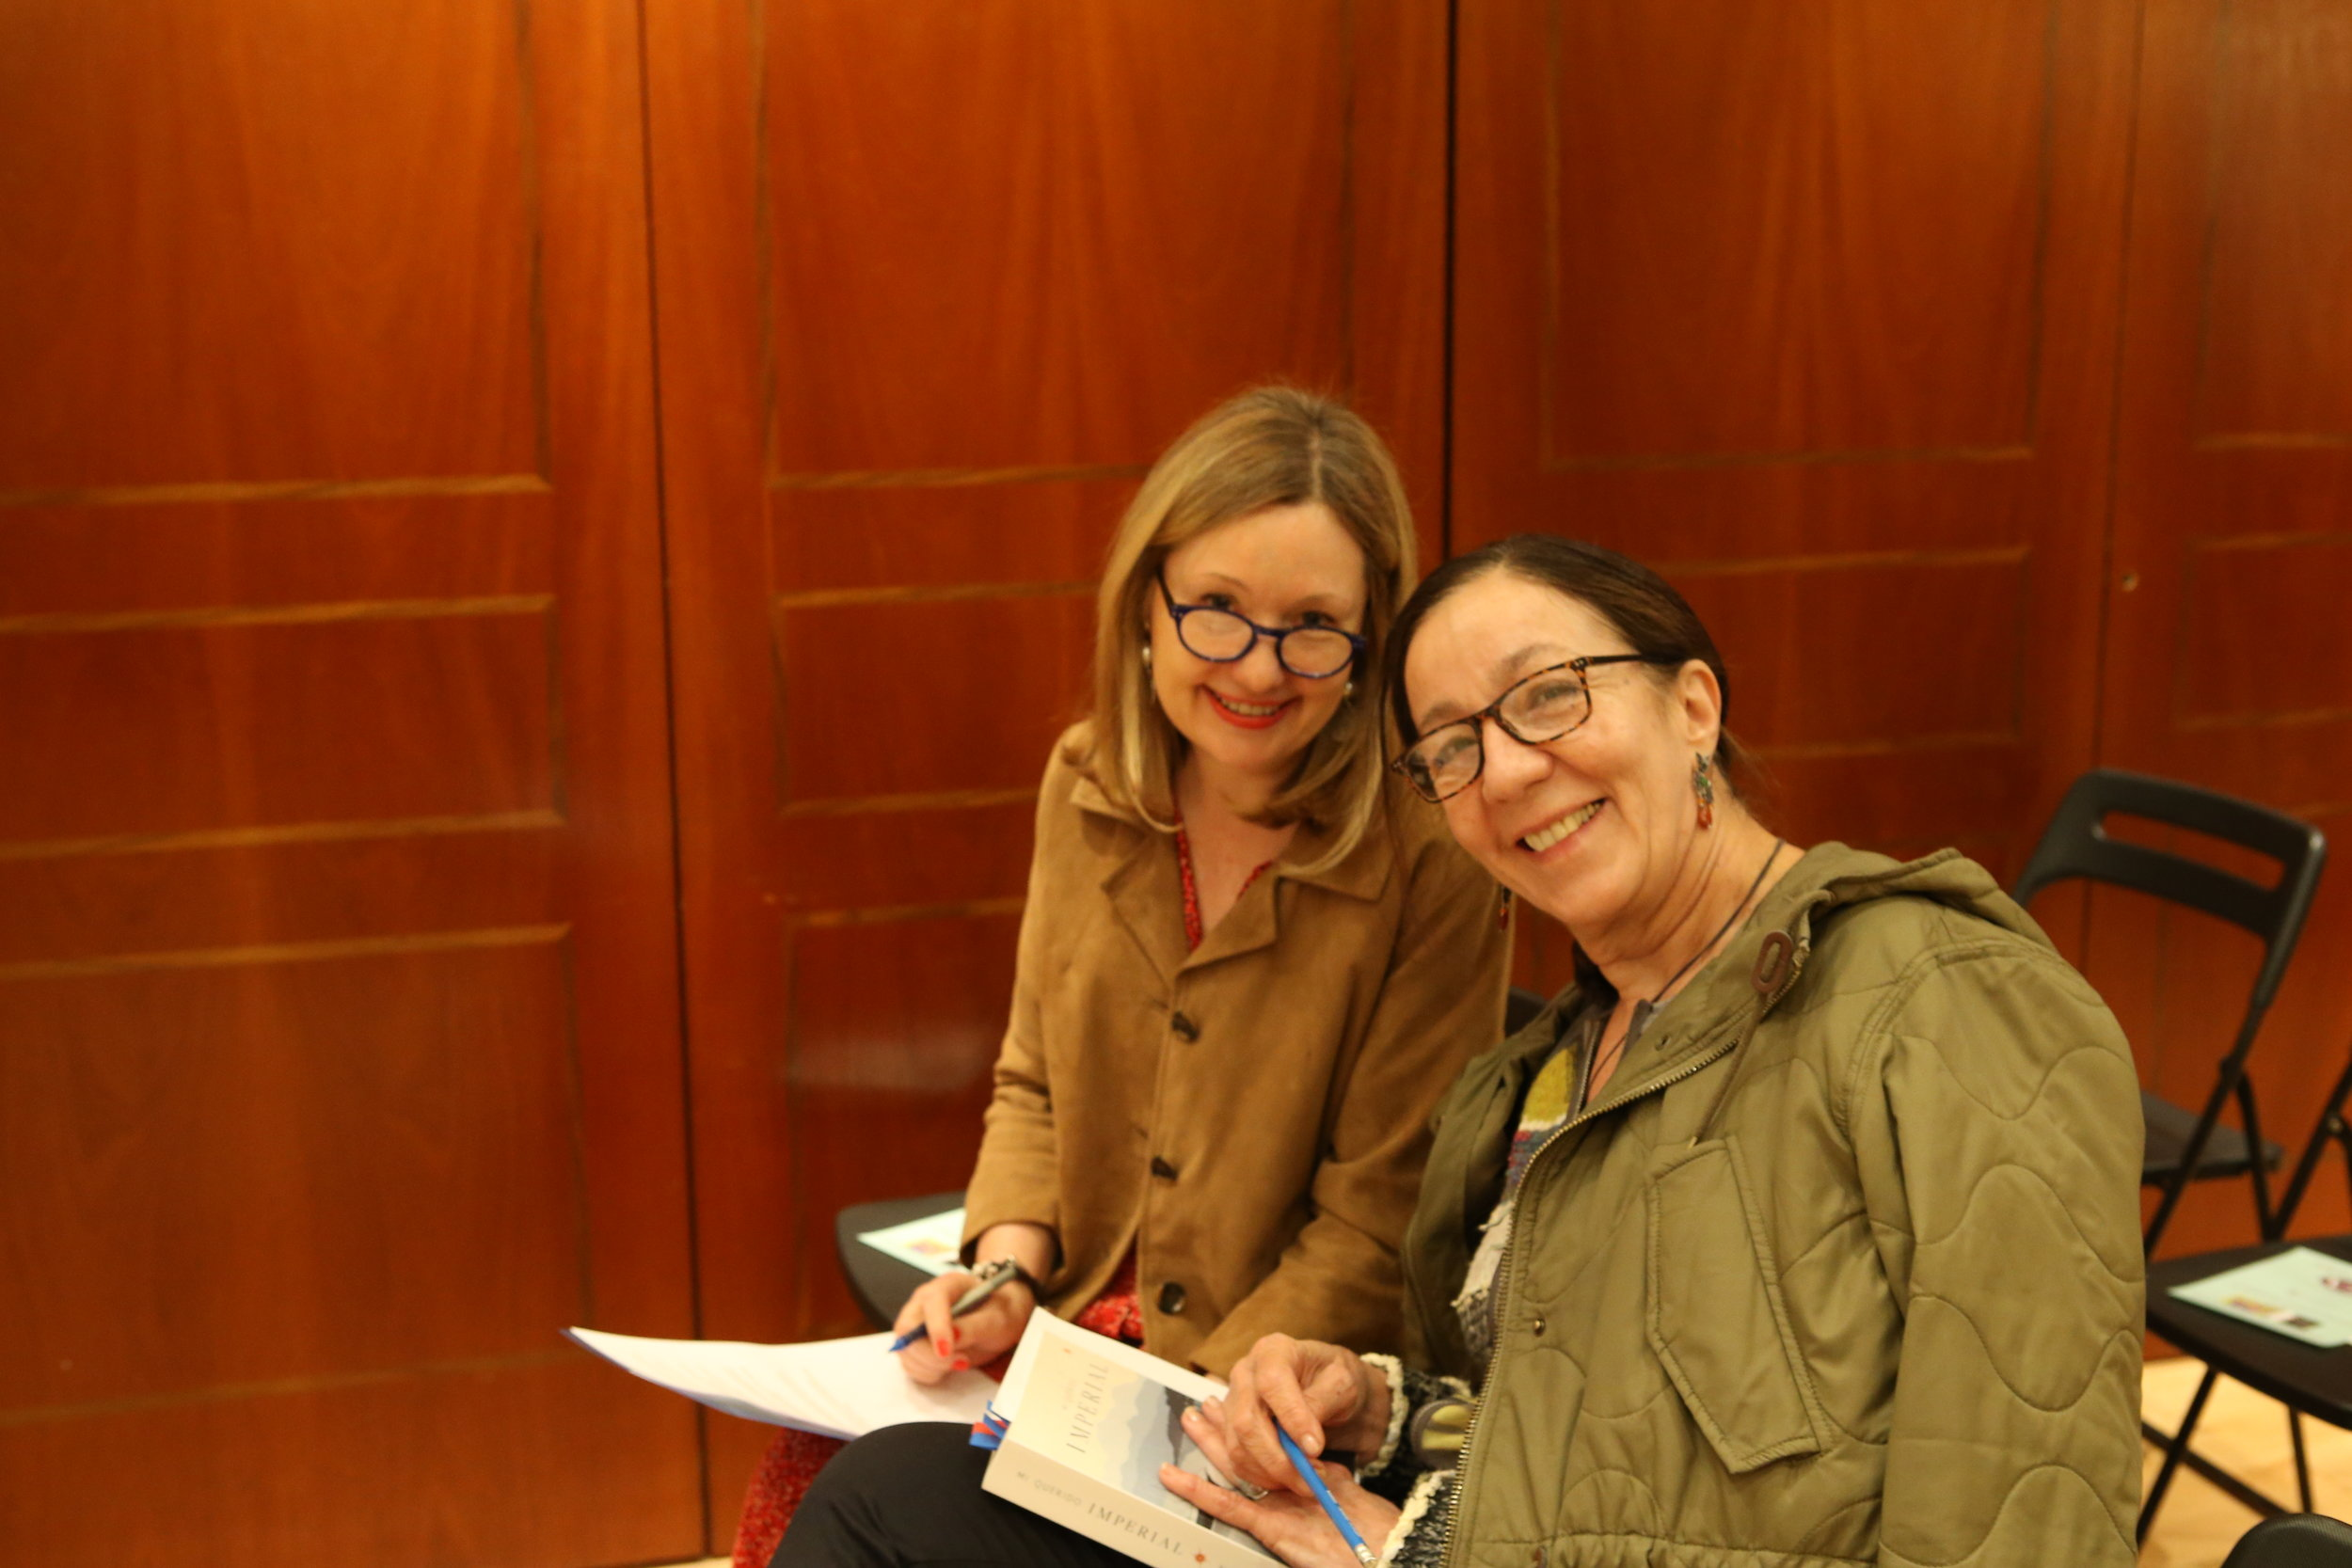 With Paloma Zozaya, making last minute notes ahead of the launch.